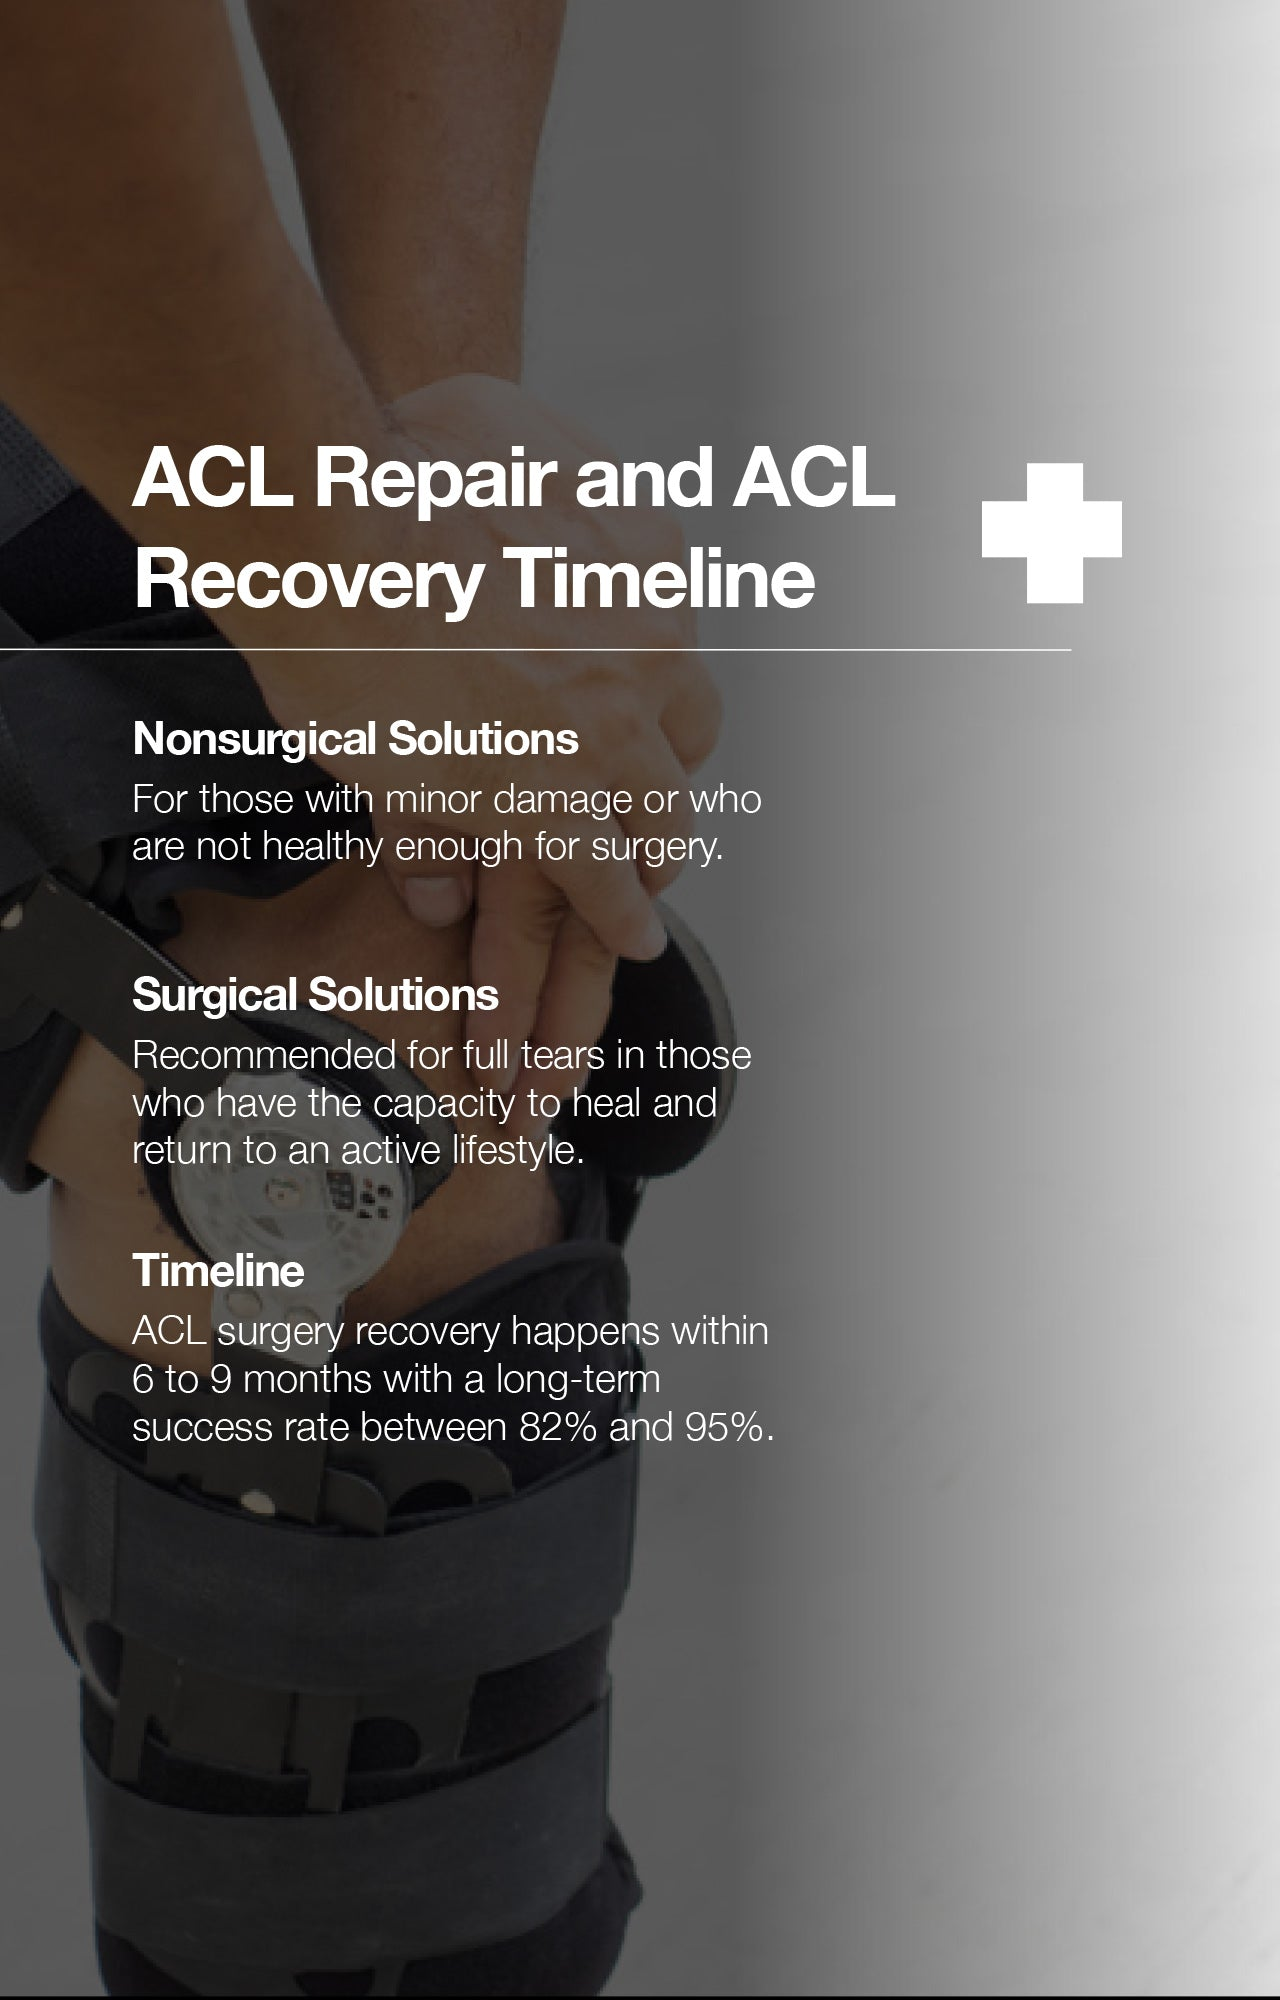 ACL Repair and ACL Recovery Timeline